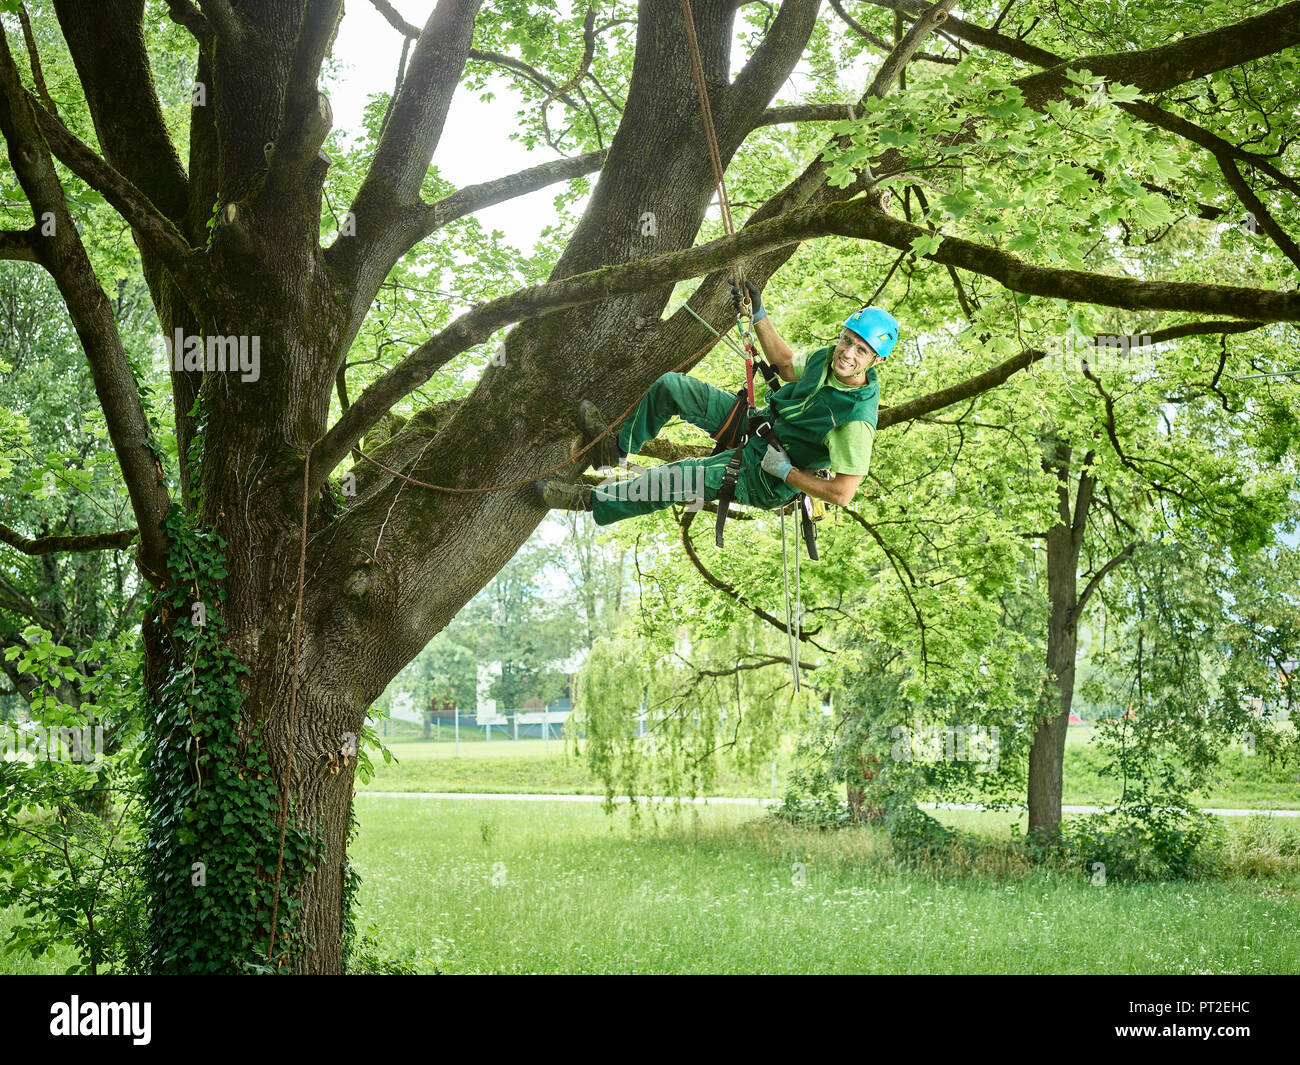 Tree Cutter Tree Cutter Hanging On Rope In Tree Stock Photo 221331528 Alamy